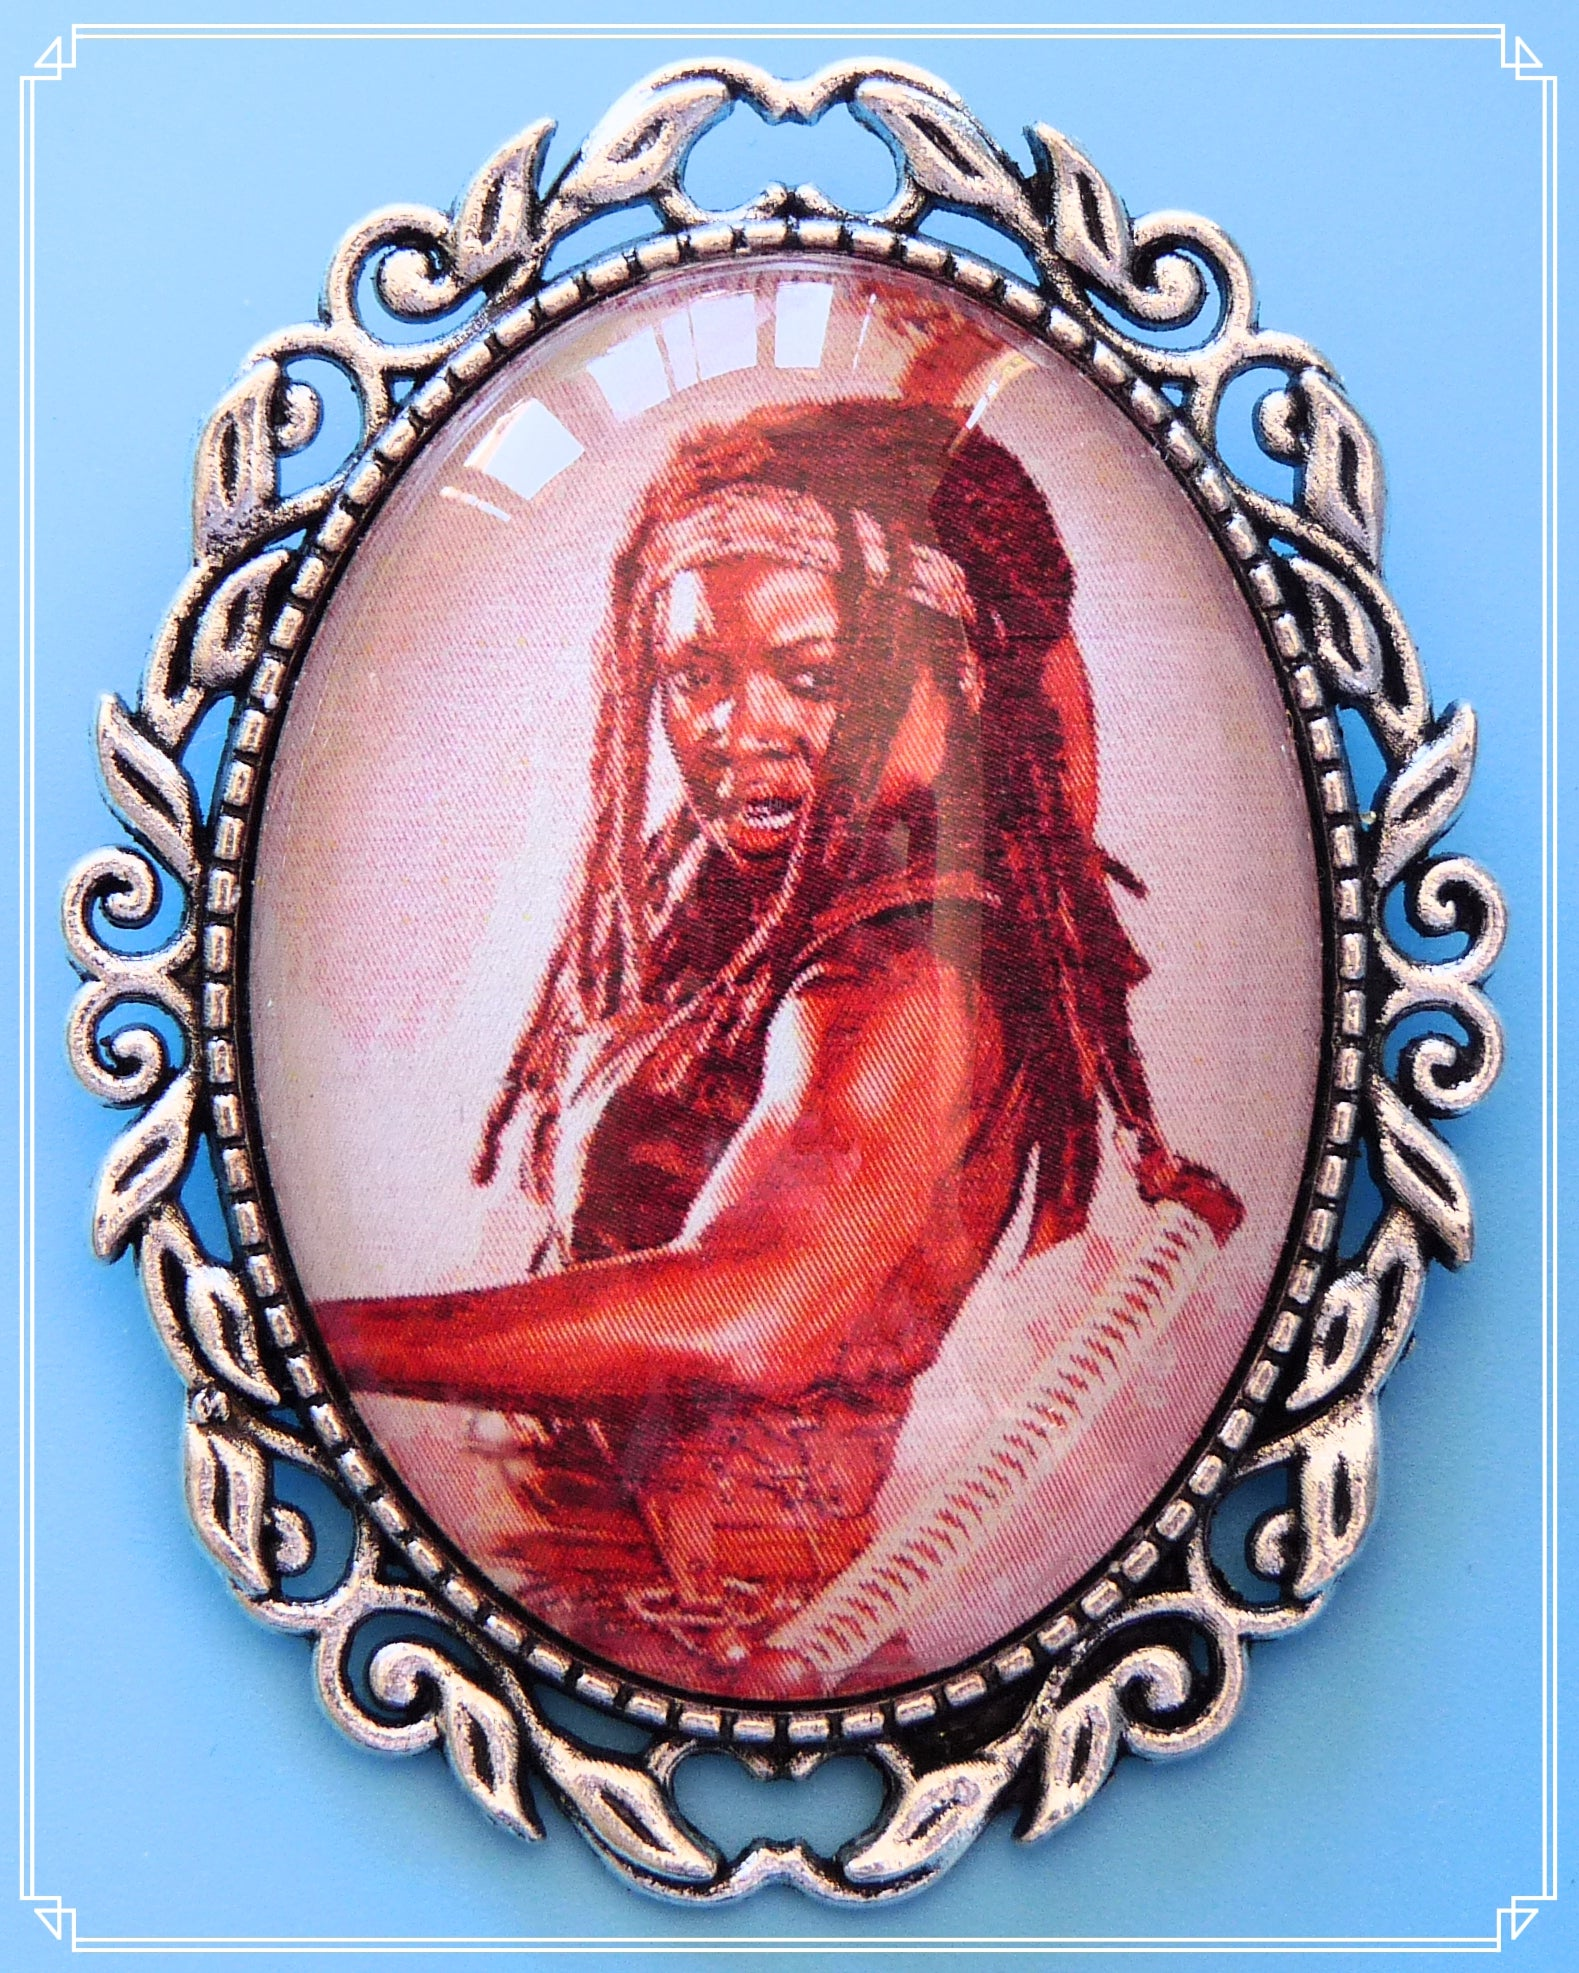 The Michonne brooch is part of my Pop Culture collection and inspired by the TV show The Walking Dead.